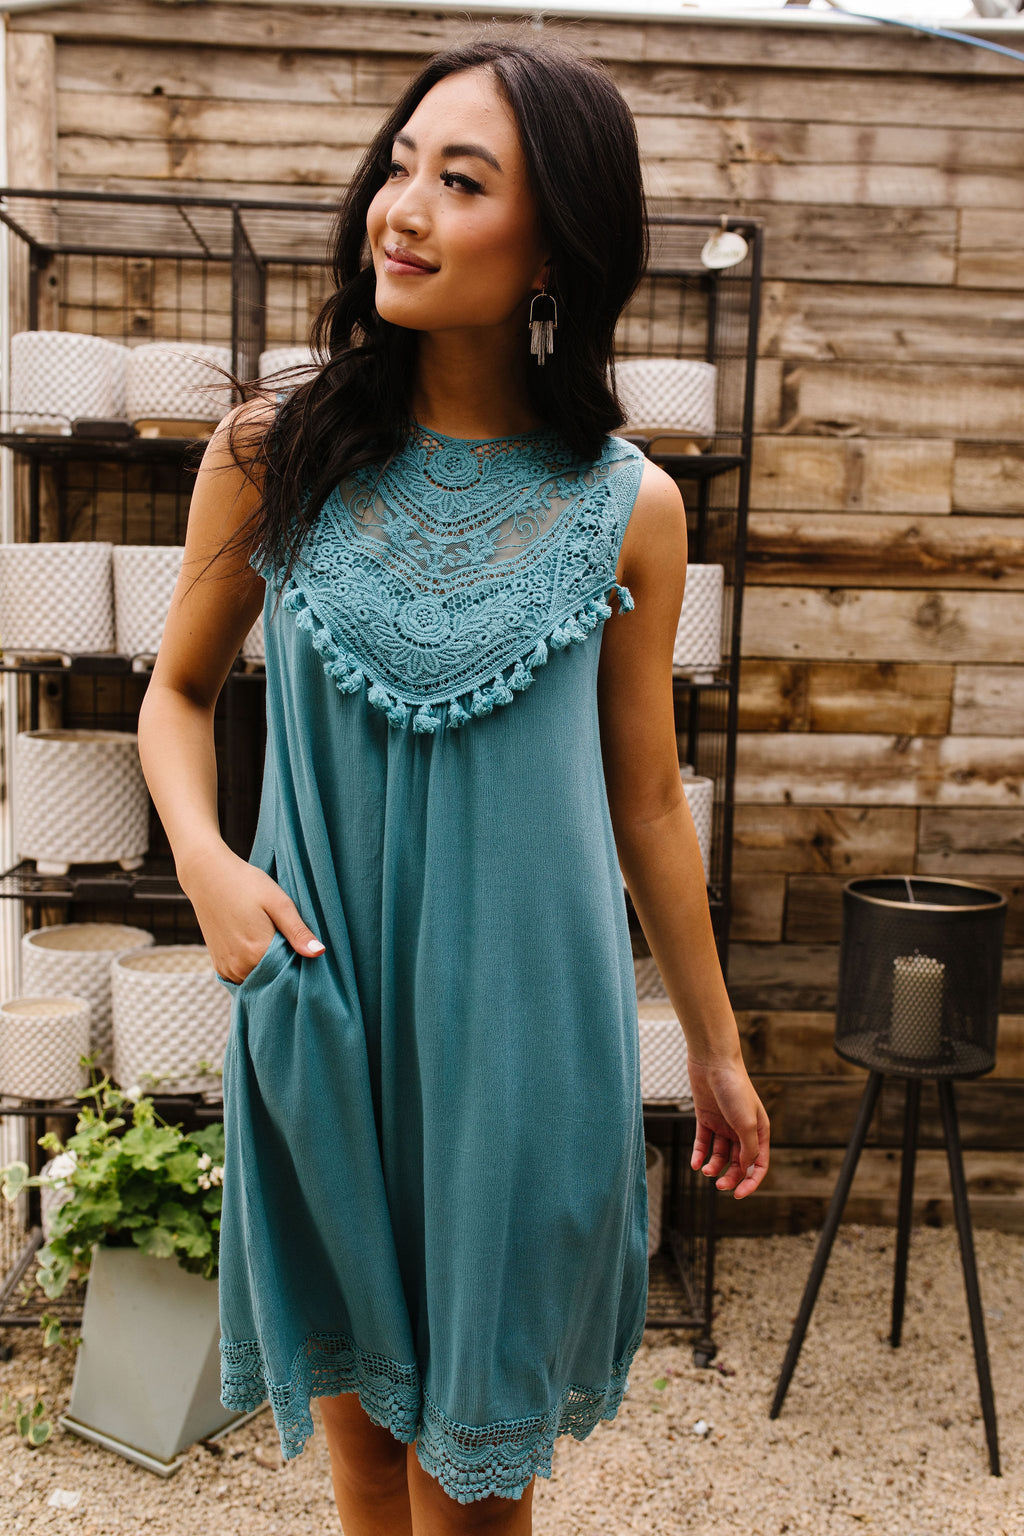 Face Value Lace Trimmed Dress